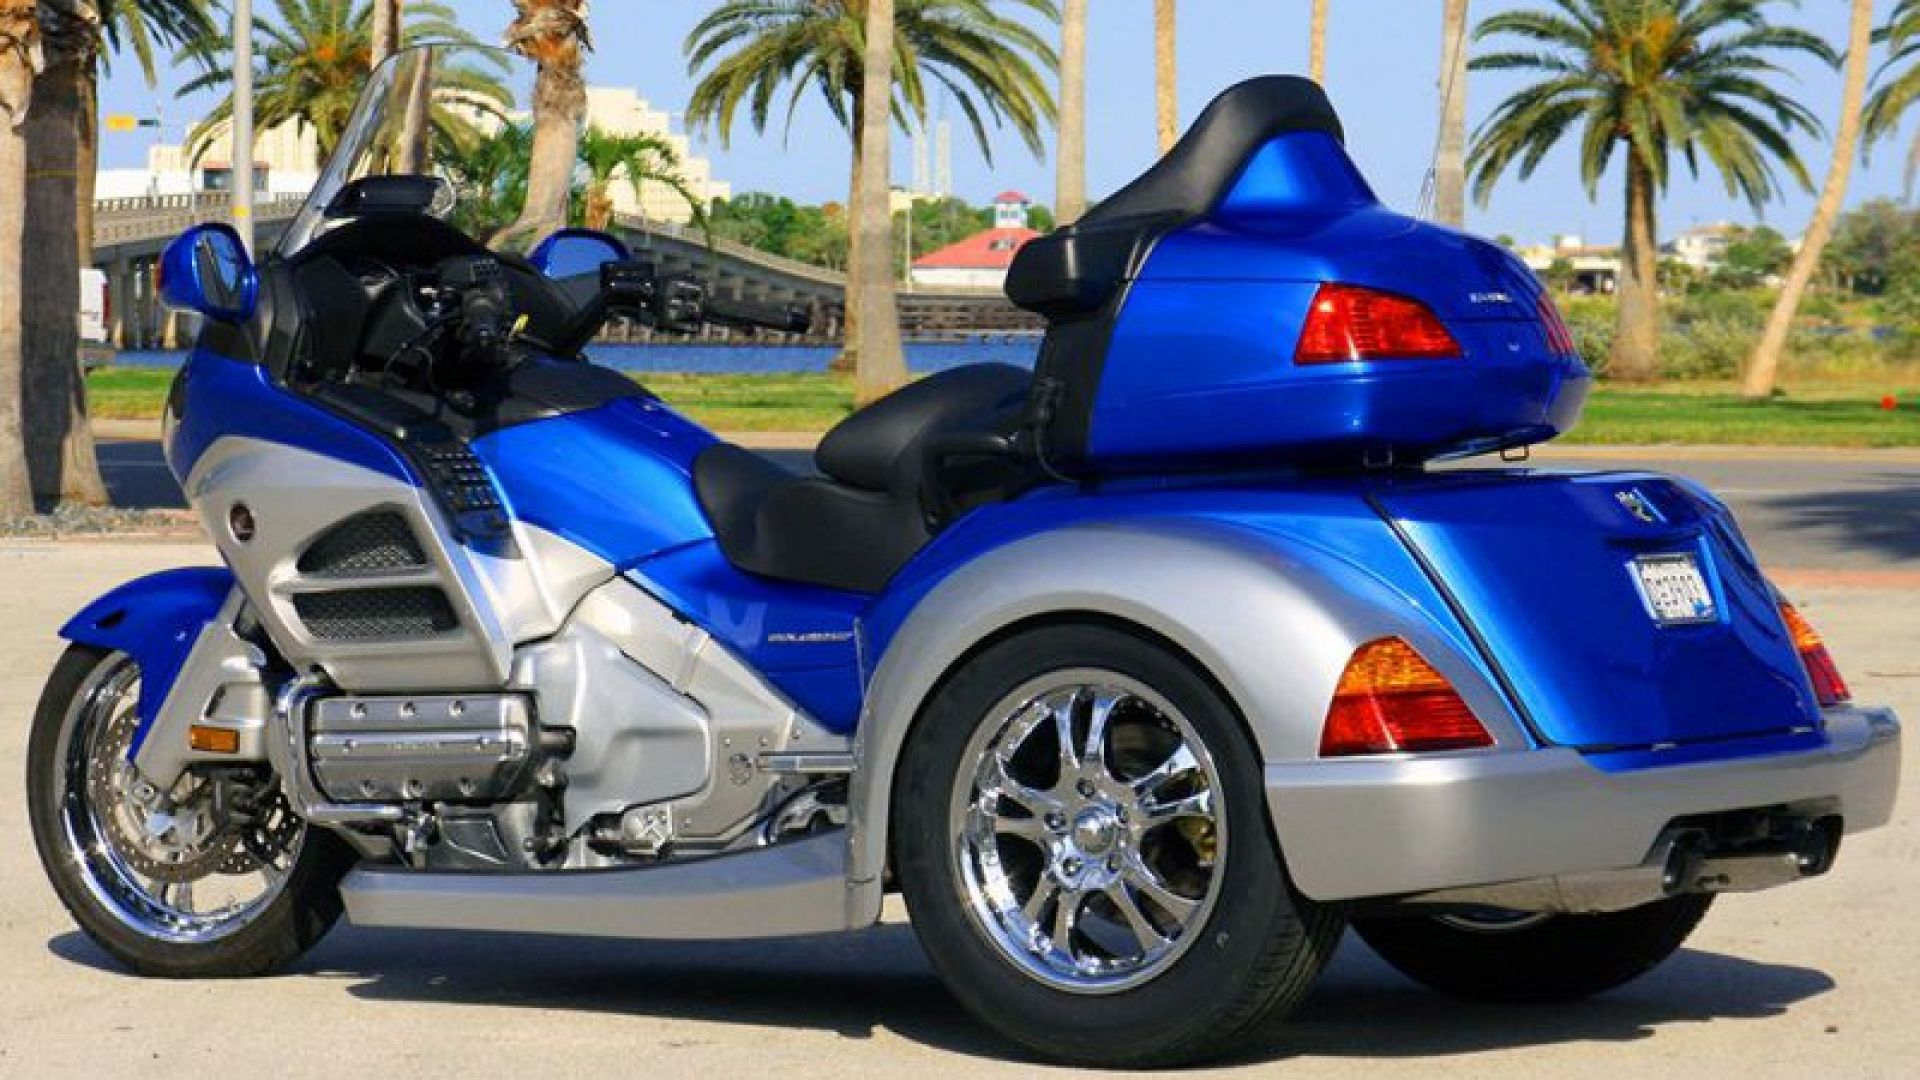 Pianeta USA: Roadsmith HTS 1800 Goldwing - MotorBox